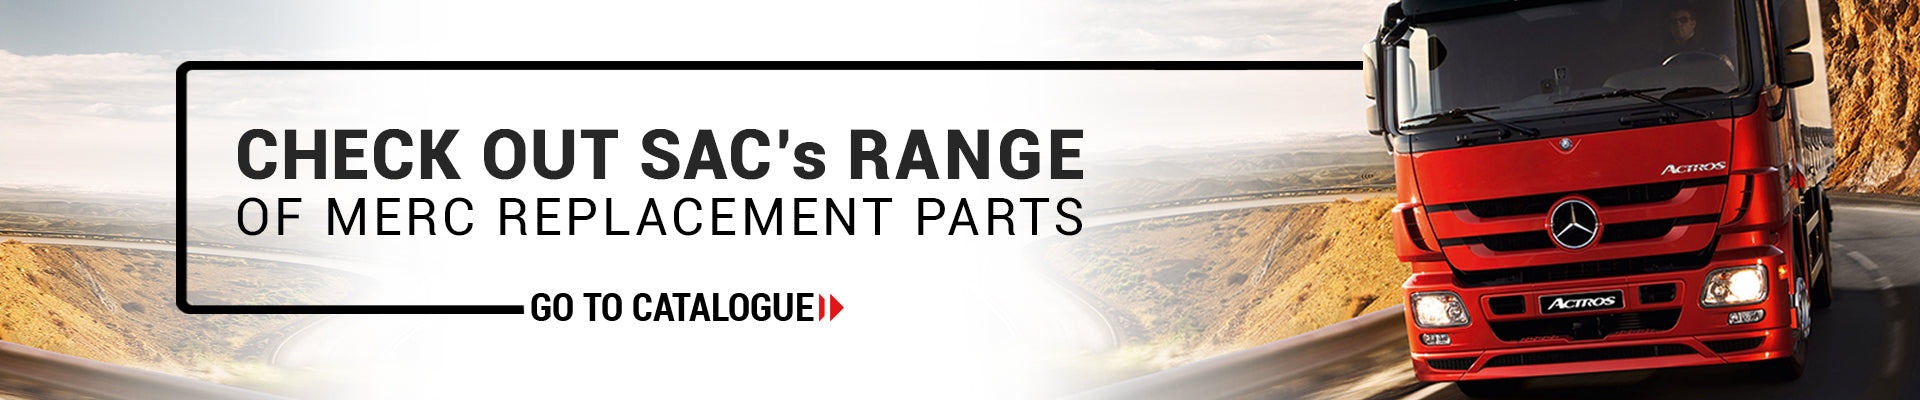 SAC Replacement Parts | Merc Banner